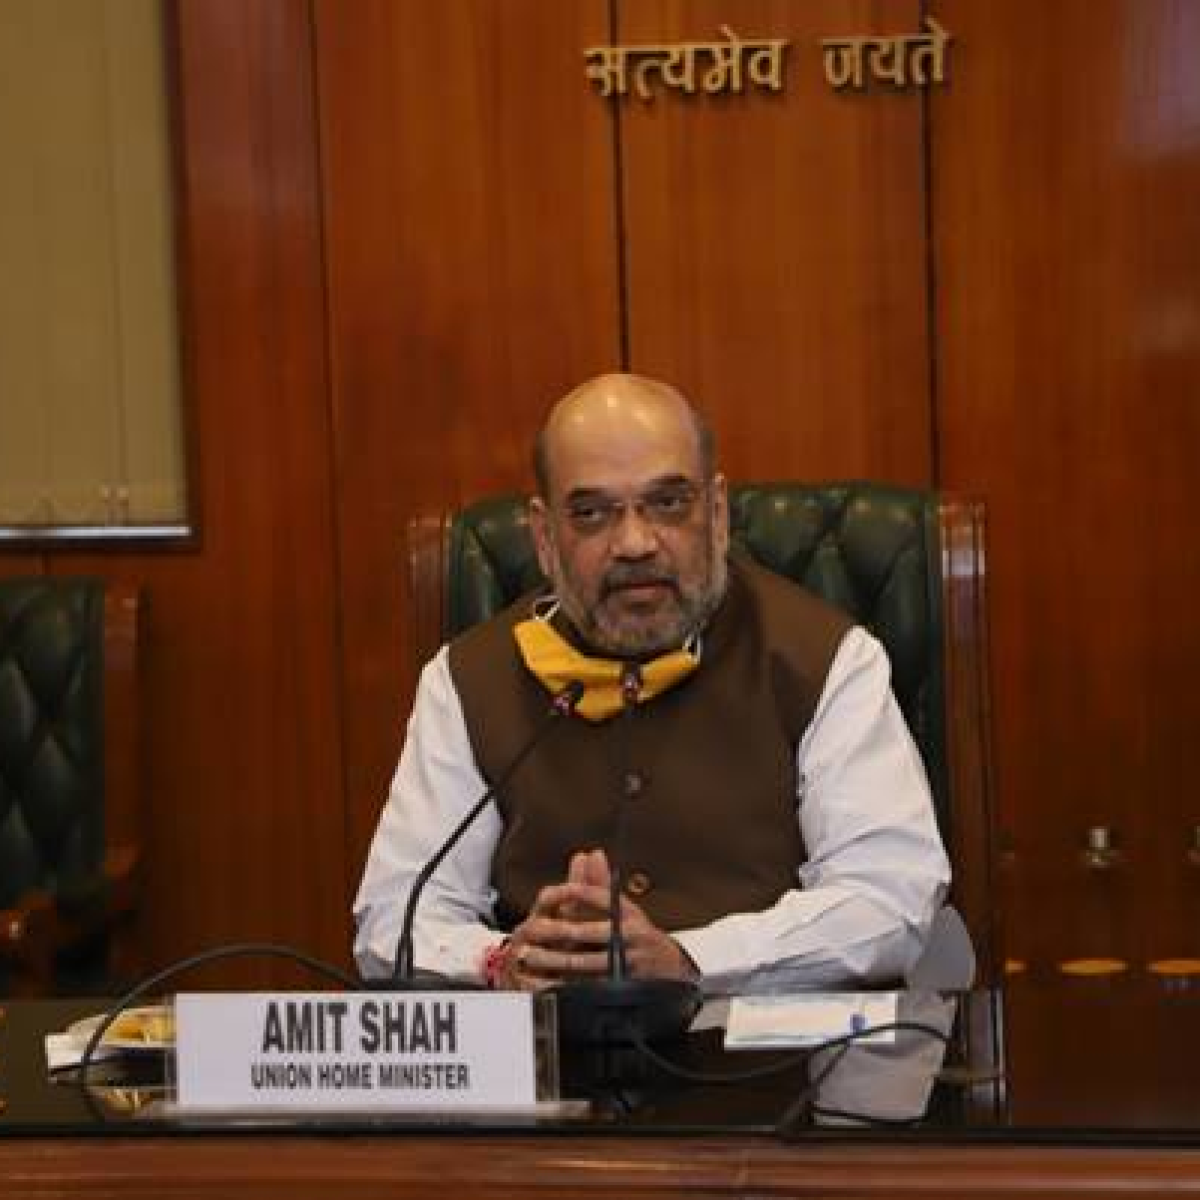 Women lawyers urge Amit Shah to help 'financially drained' advocates amid pandemic